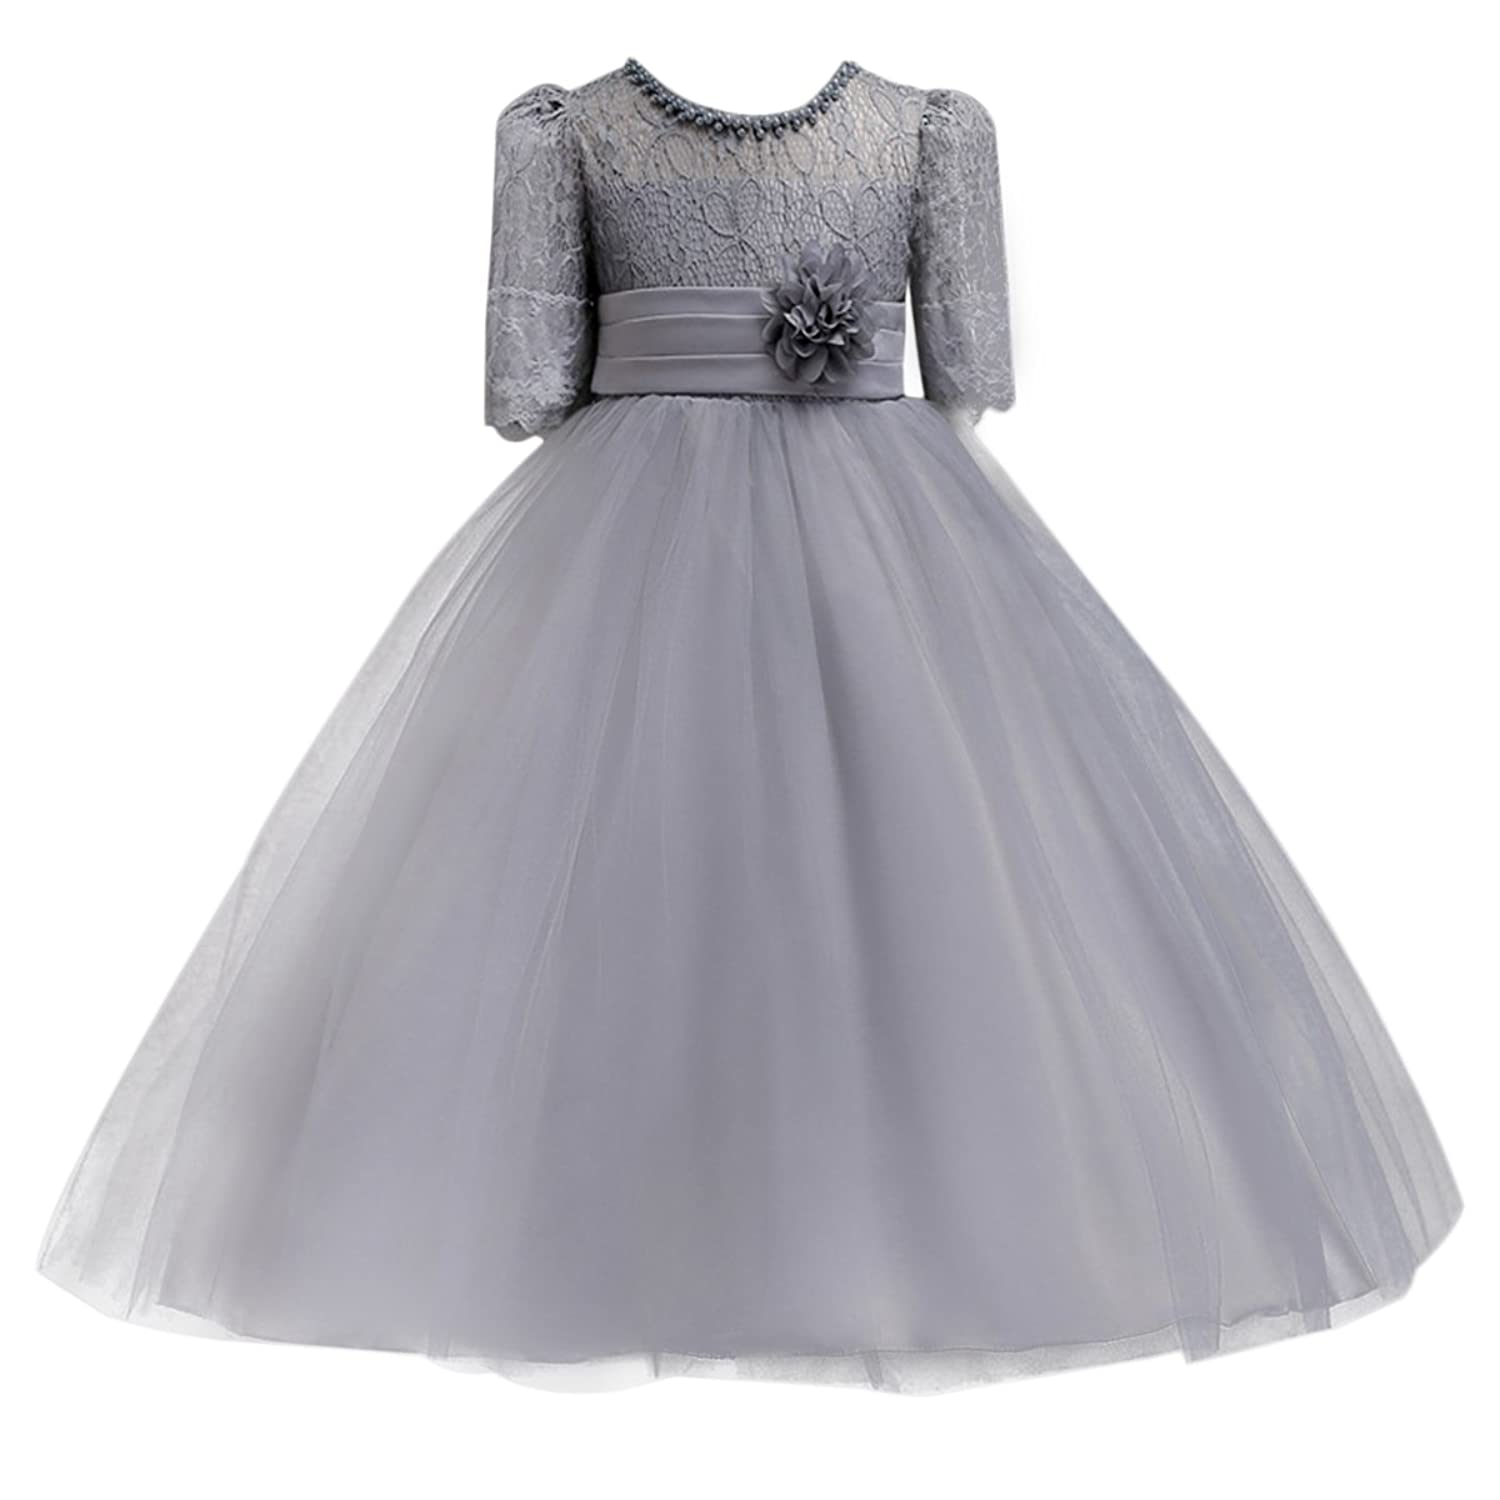 a97728df84bb Top 10 wholesale Bridesmaid Dresses And Flower Girl Dresses ...